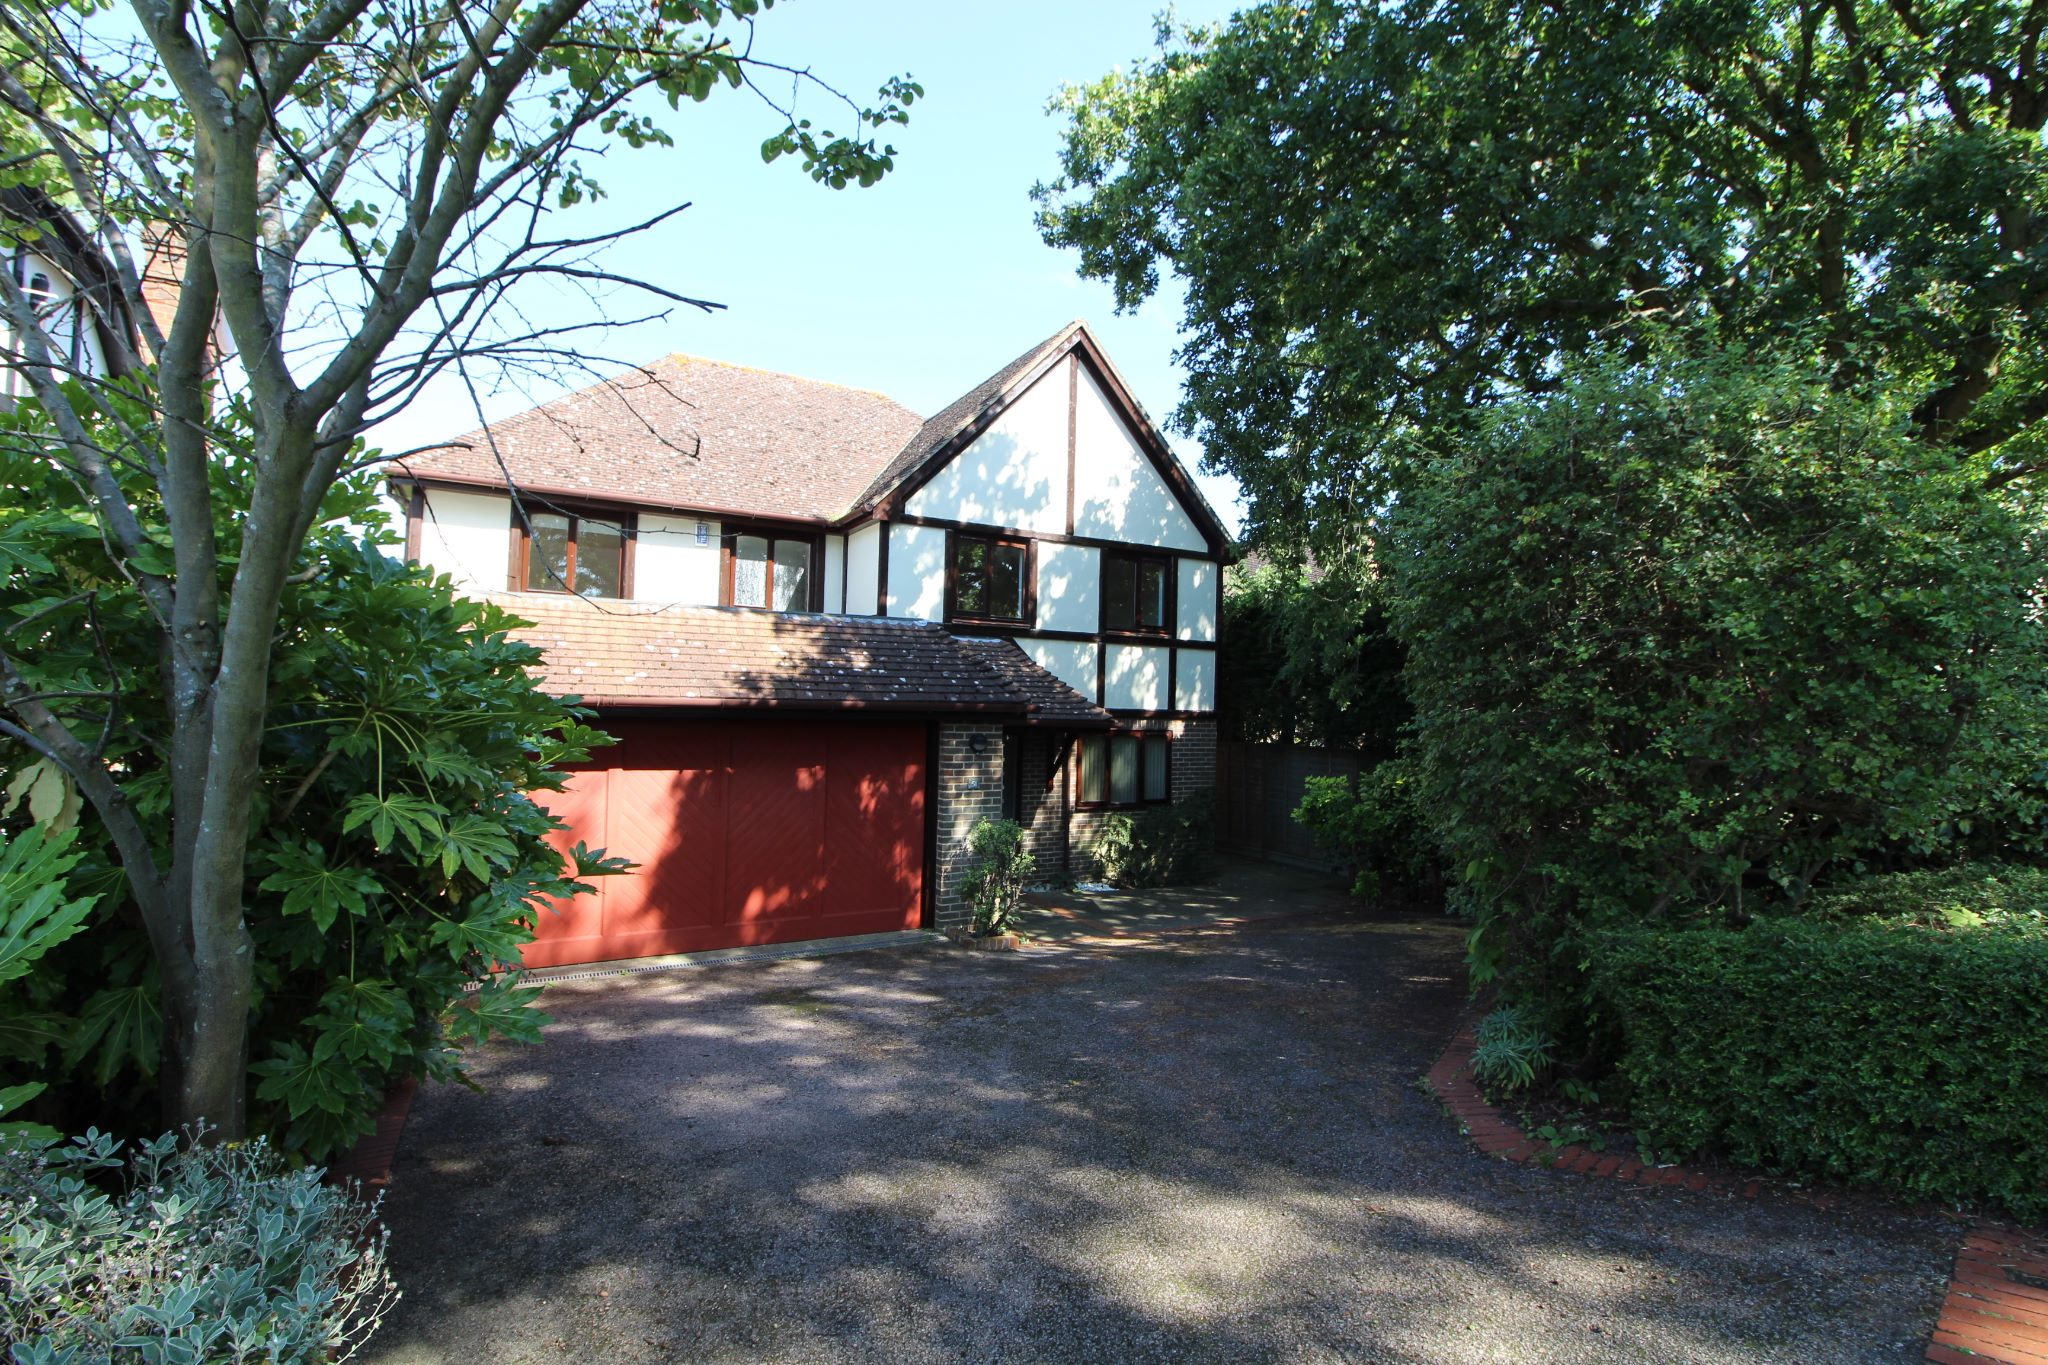 4 bedroom detached house SSTC in Cuffley - Photograph 1